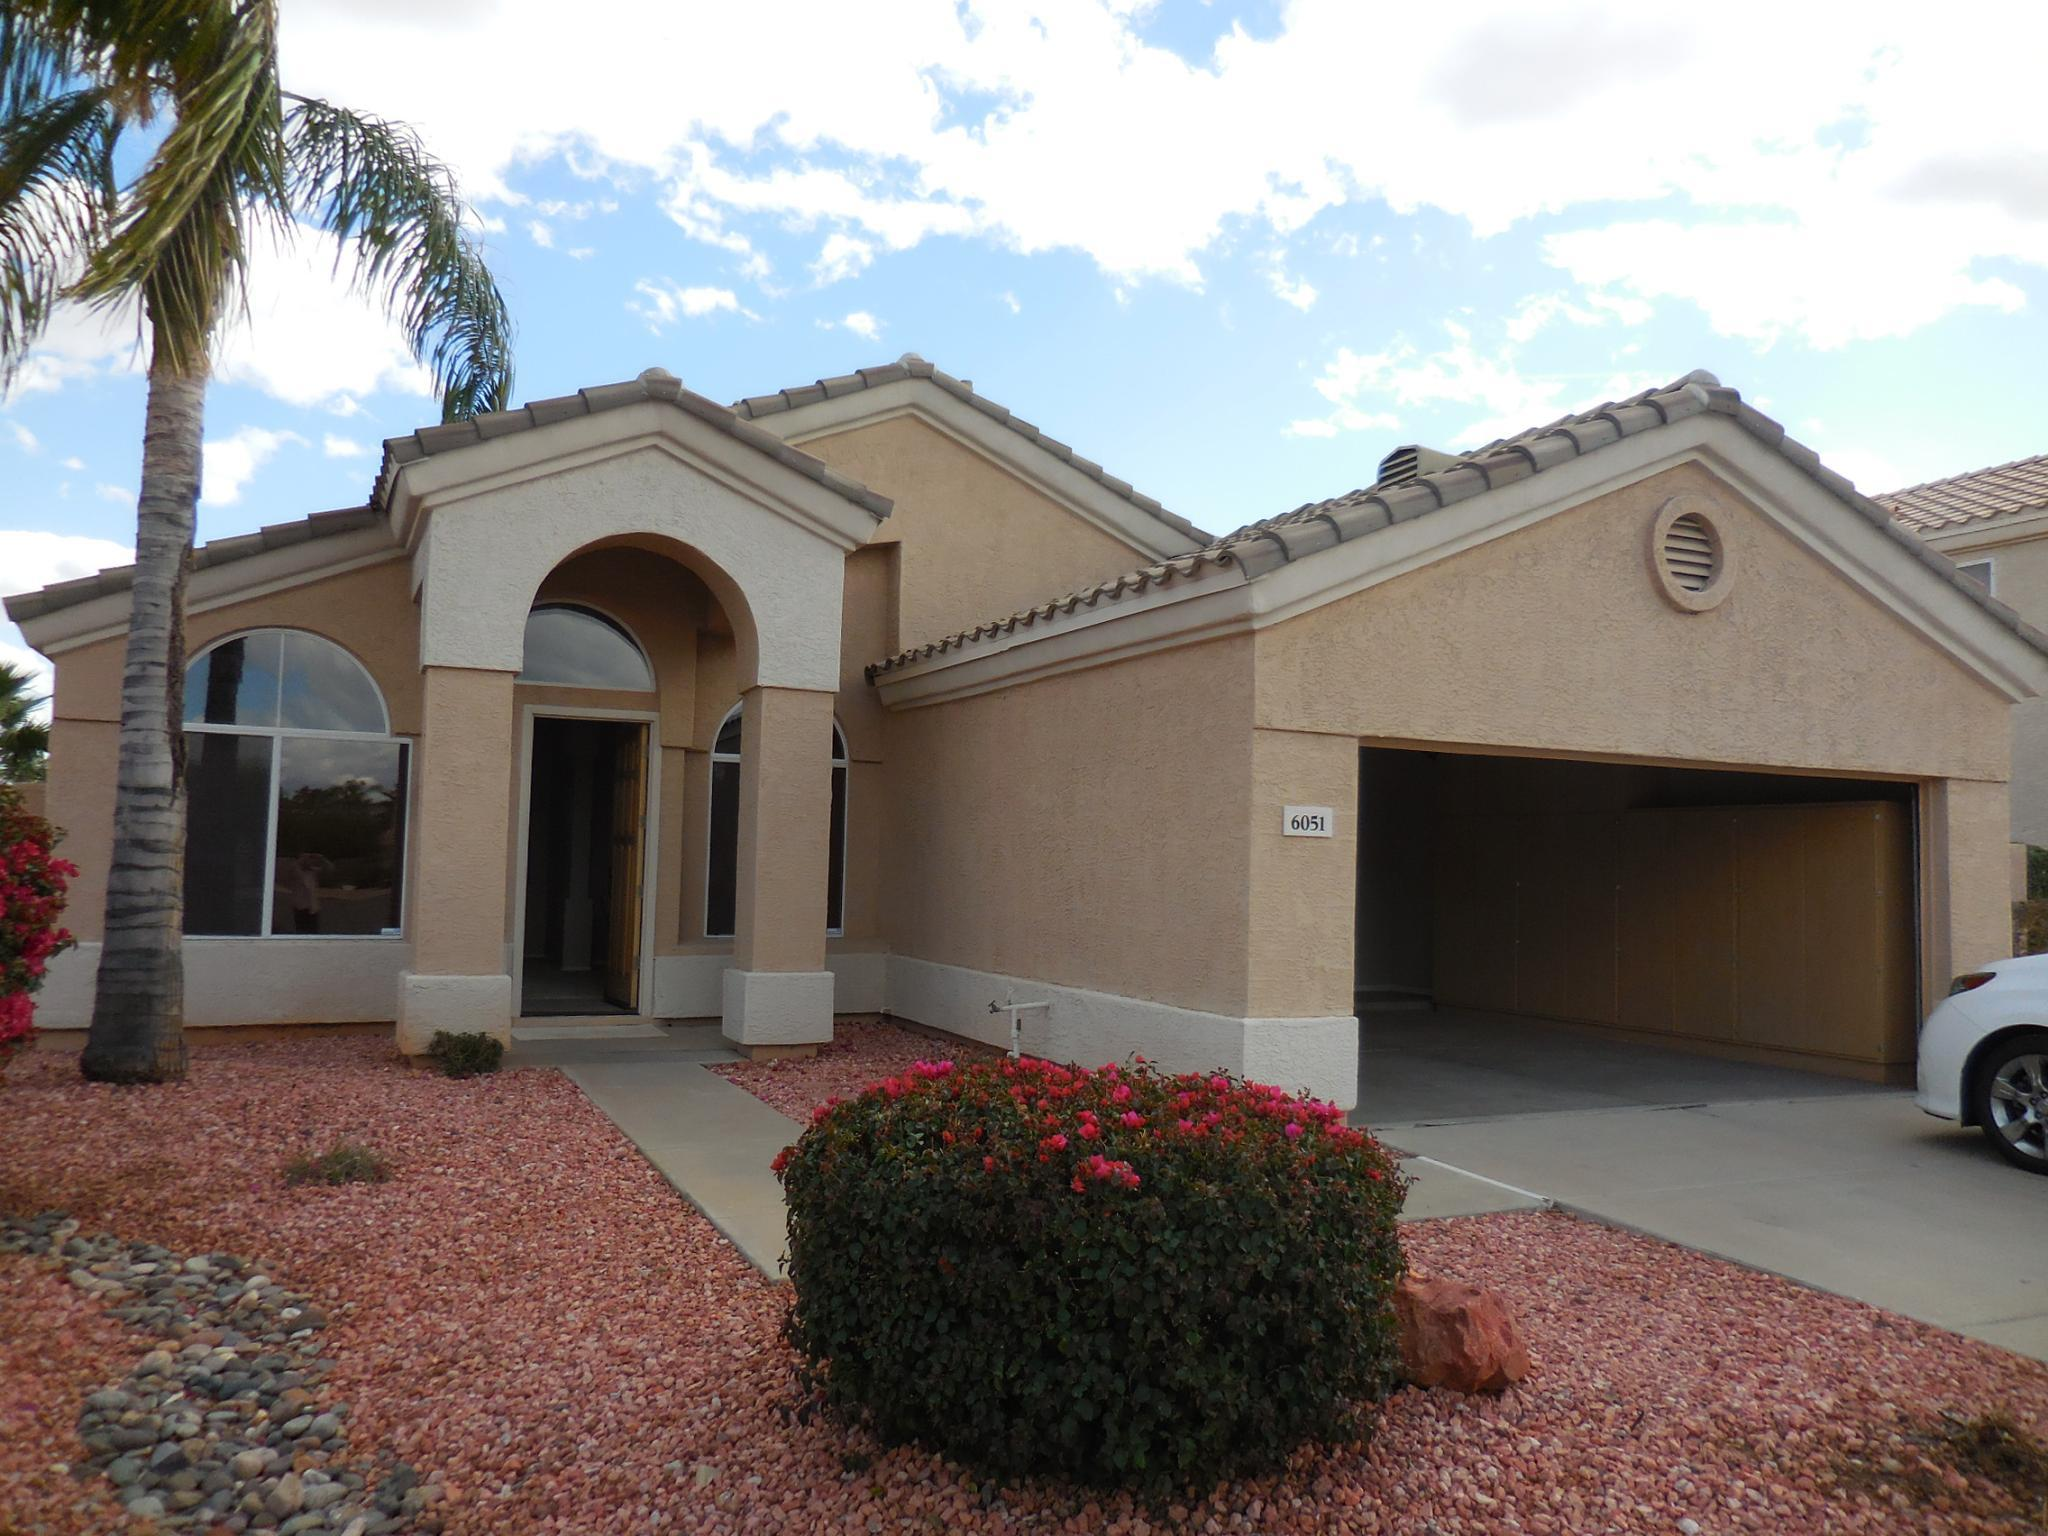 Here's the Innovative Image Of Patio Homes for Sale Glendale Az